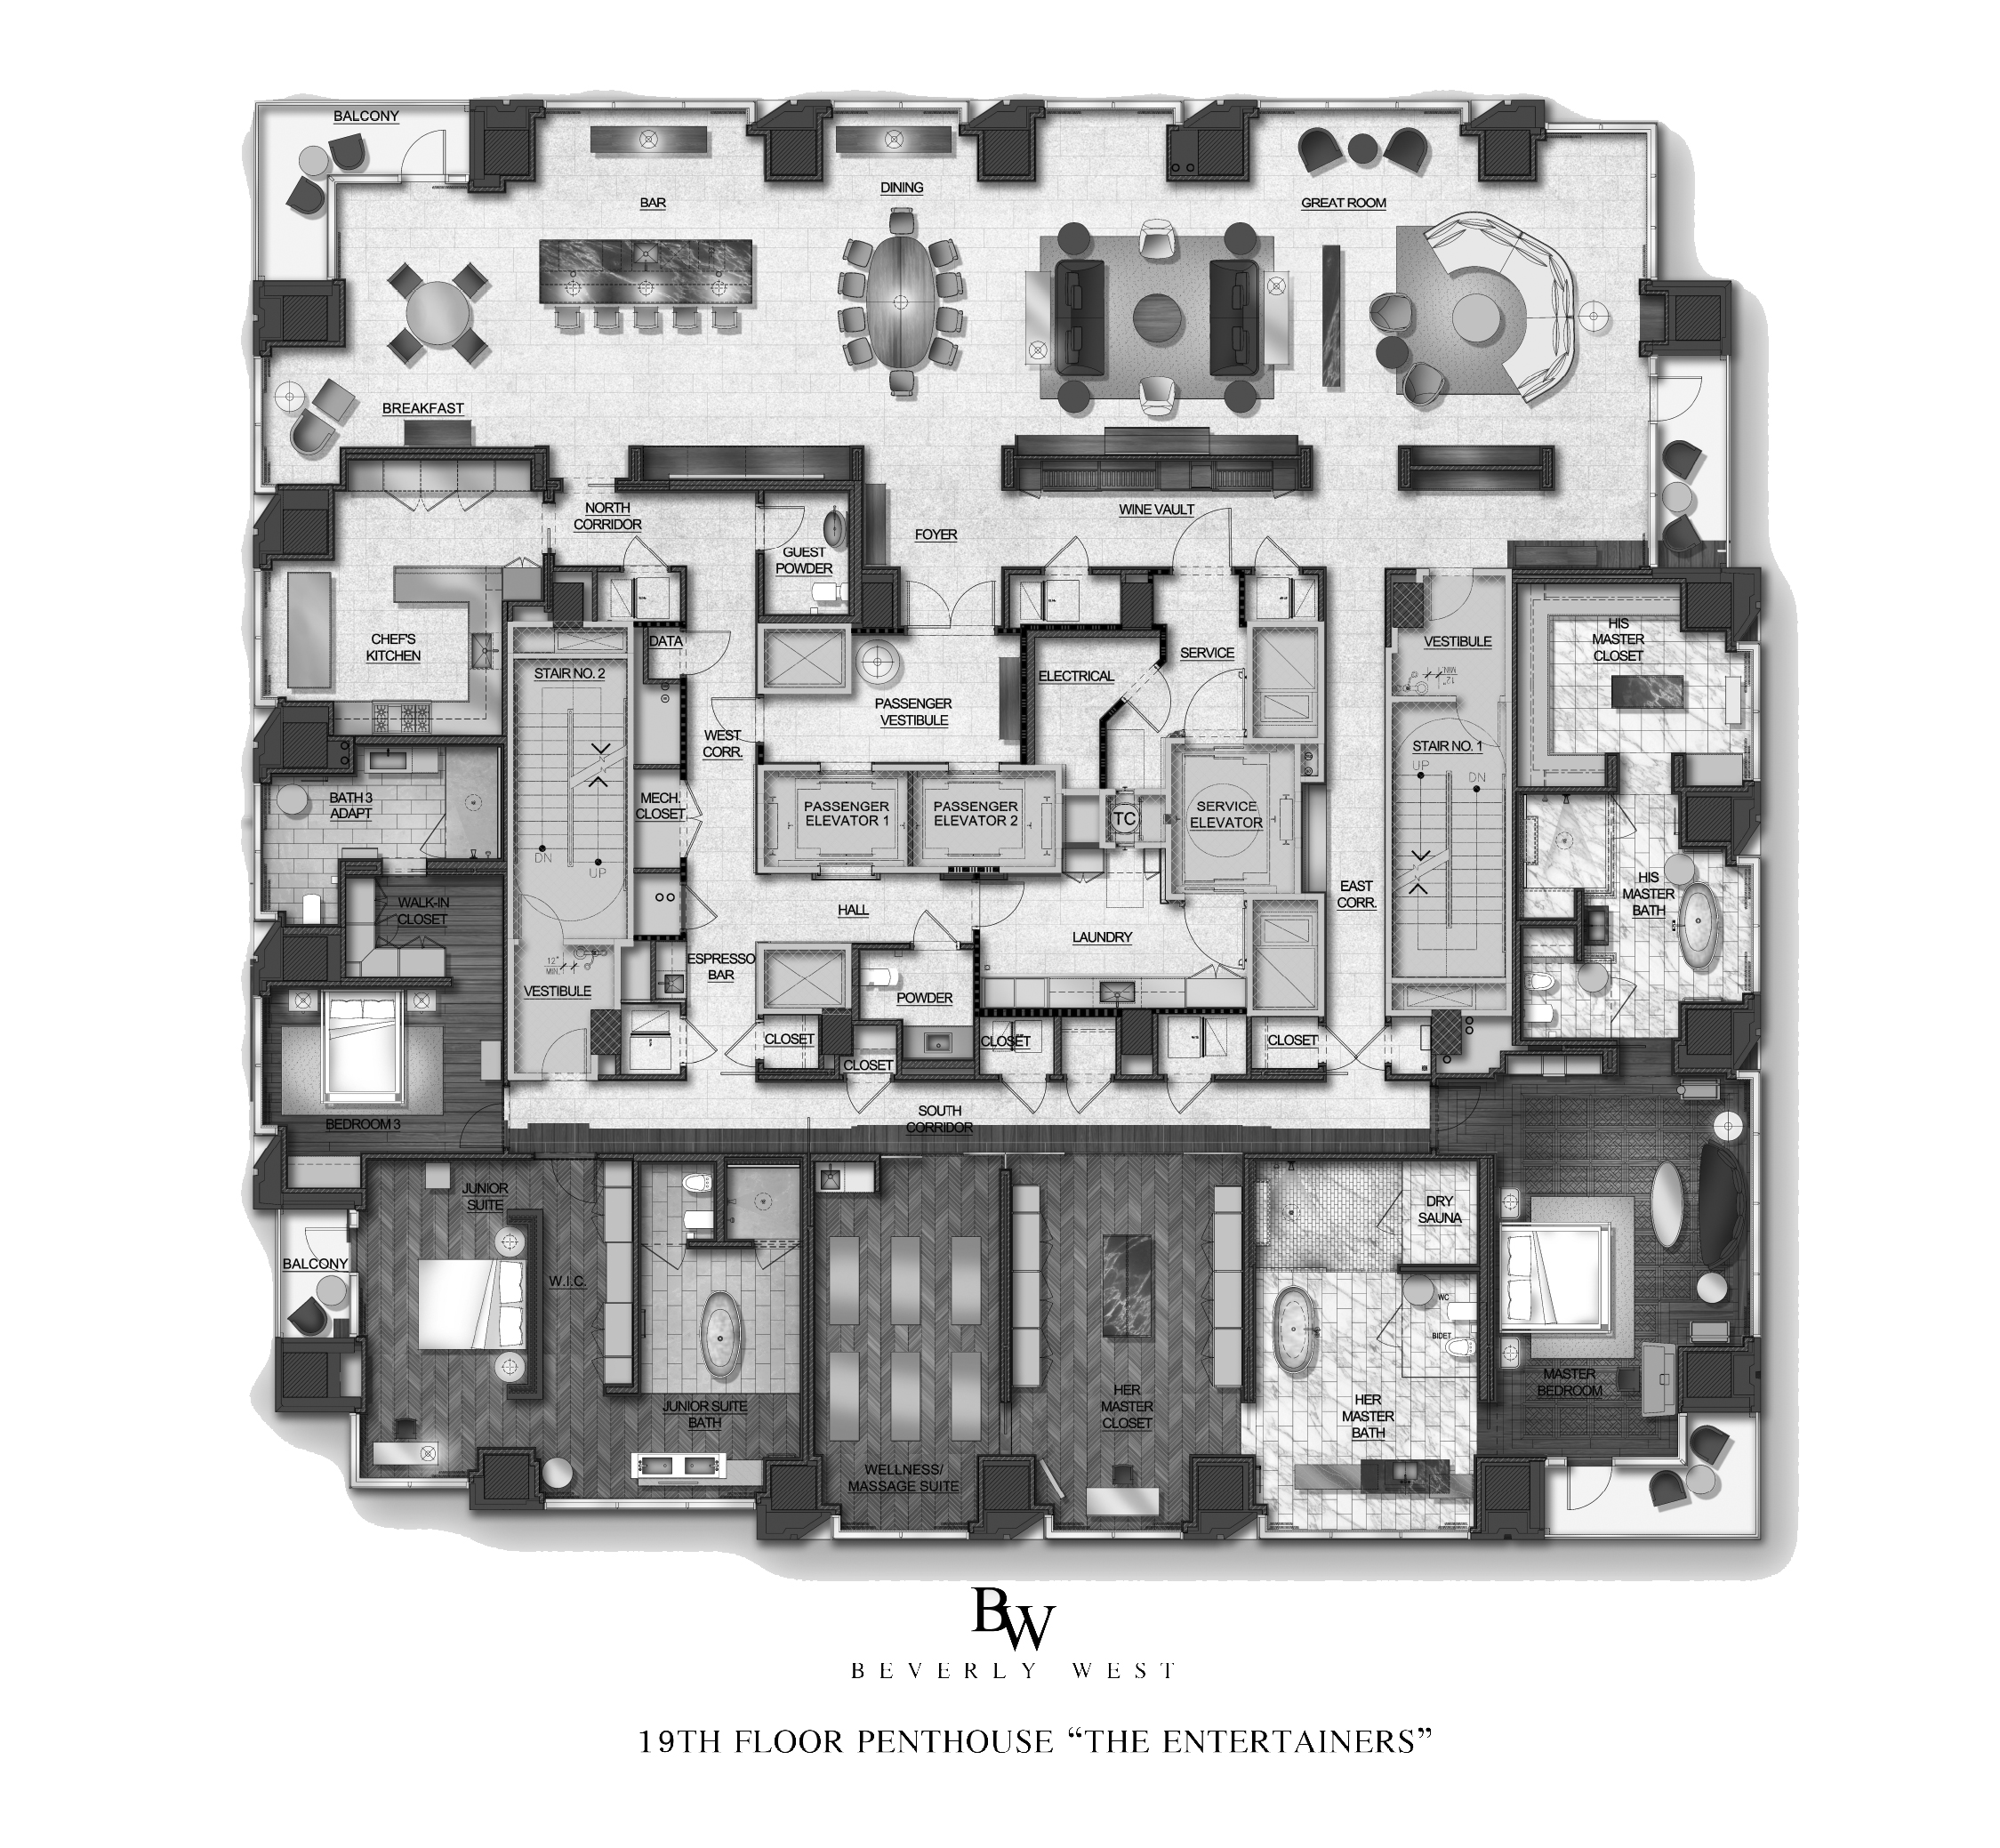 2019.05.17-19th-Floor-Penthouse-Floor-Plan.jpg